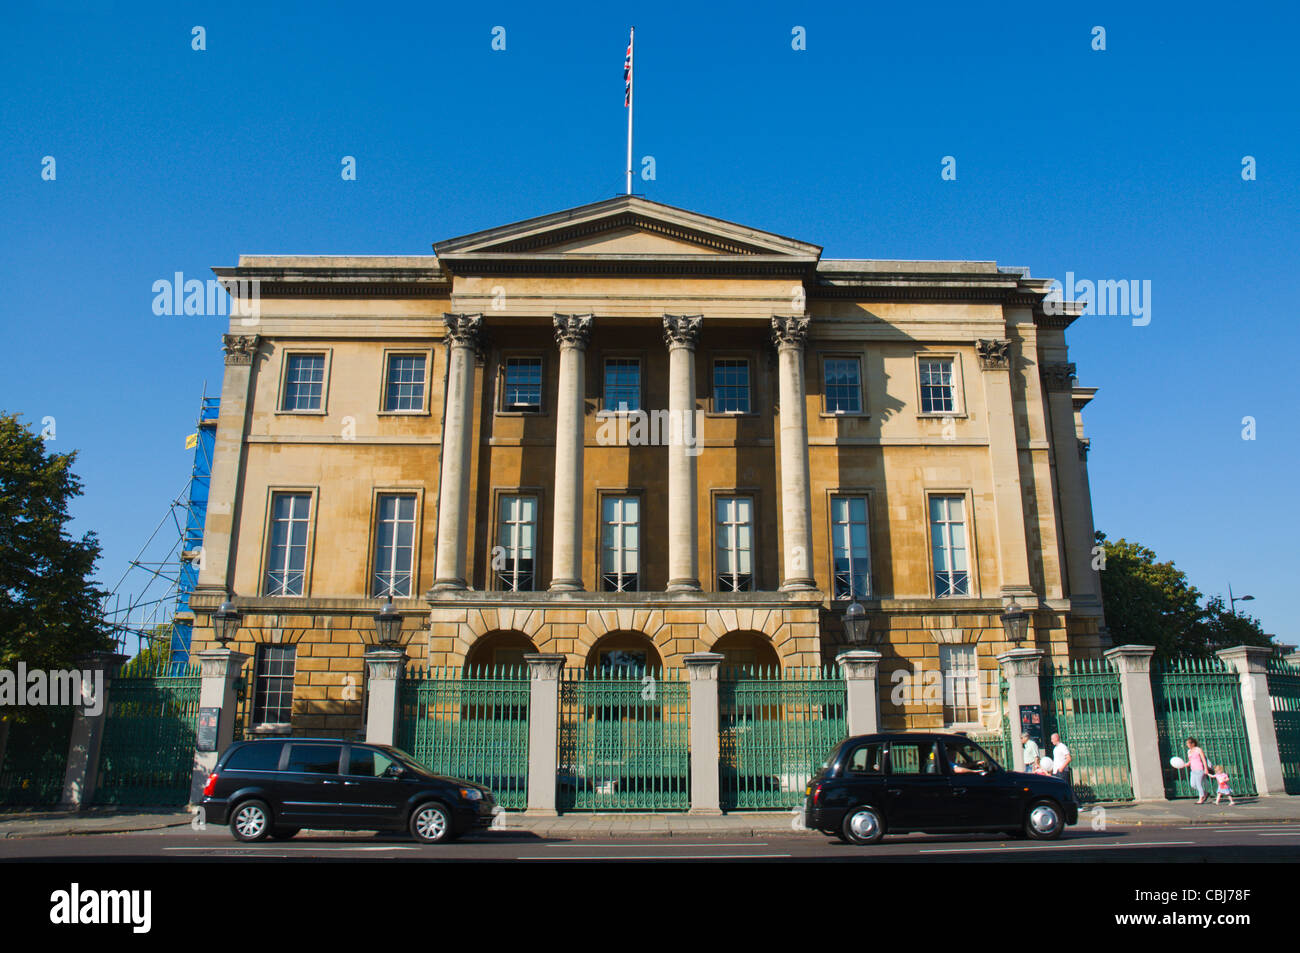 Number One London aka Apsley House along Piccadilly at Hyde Park Corner central London England UK Europe - Stock Image